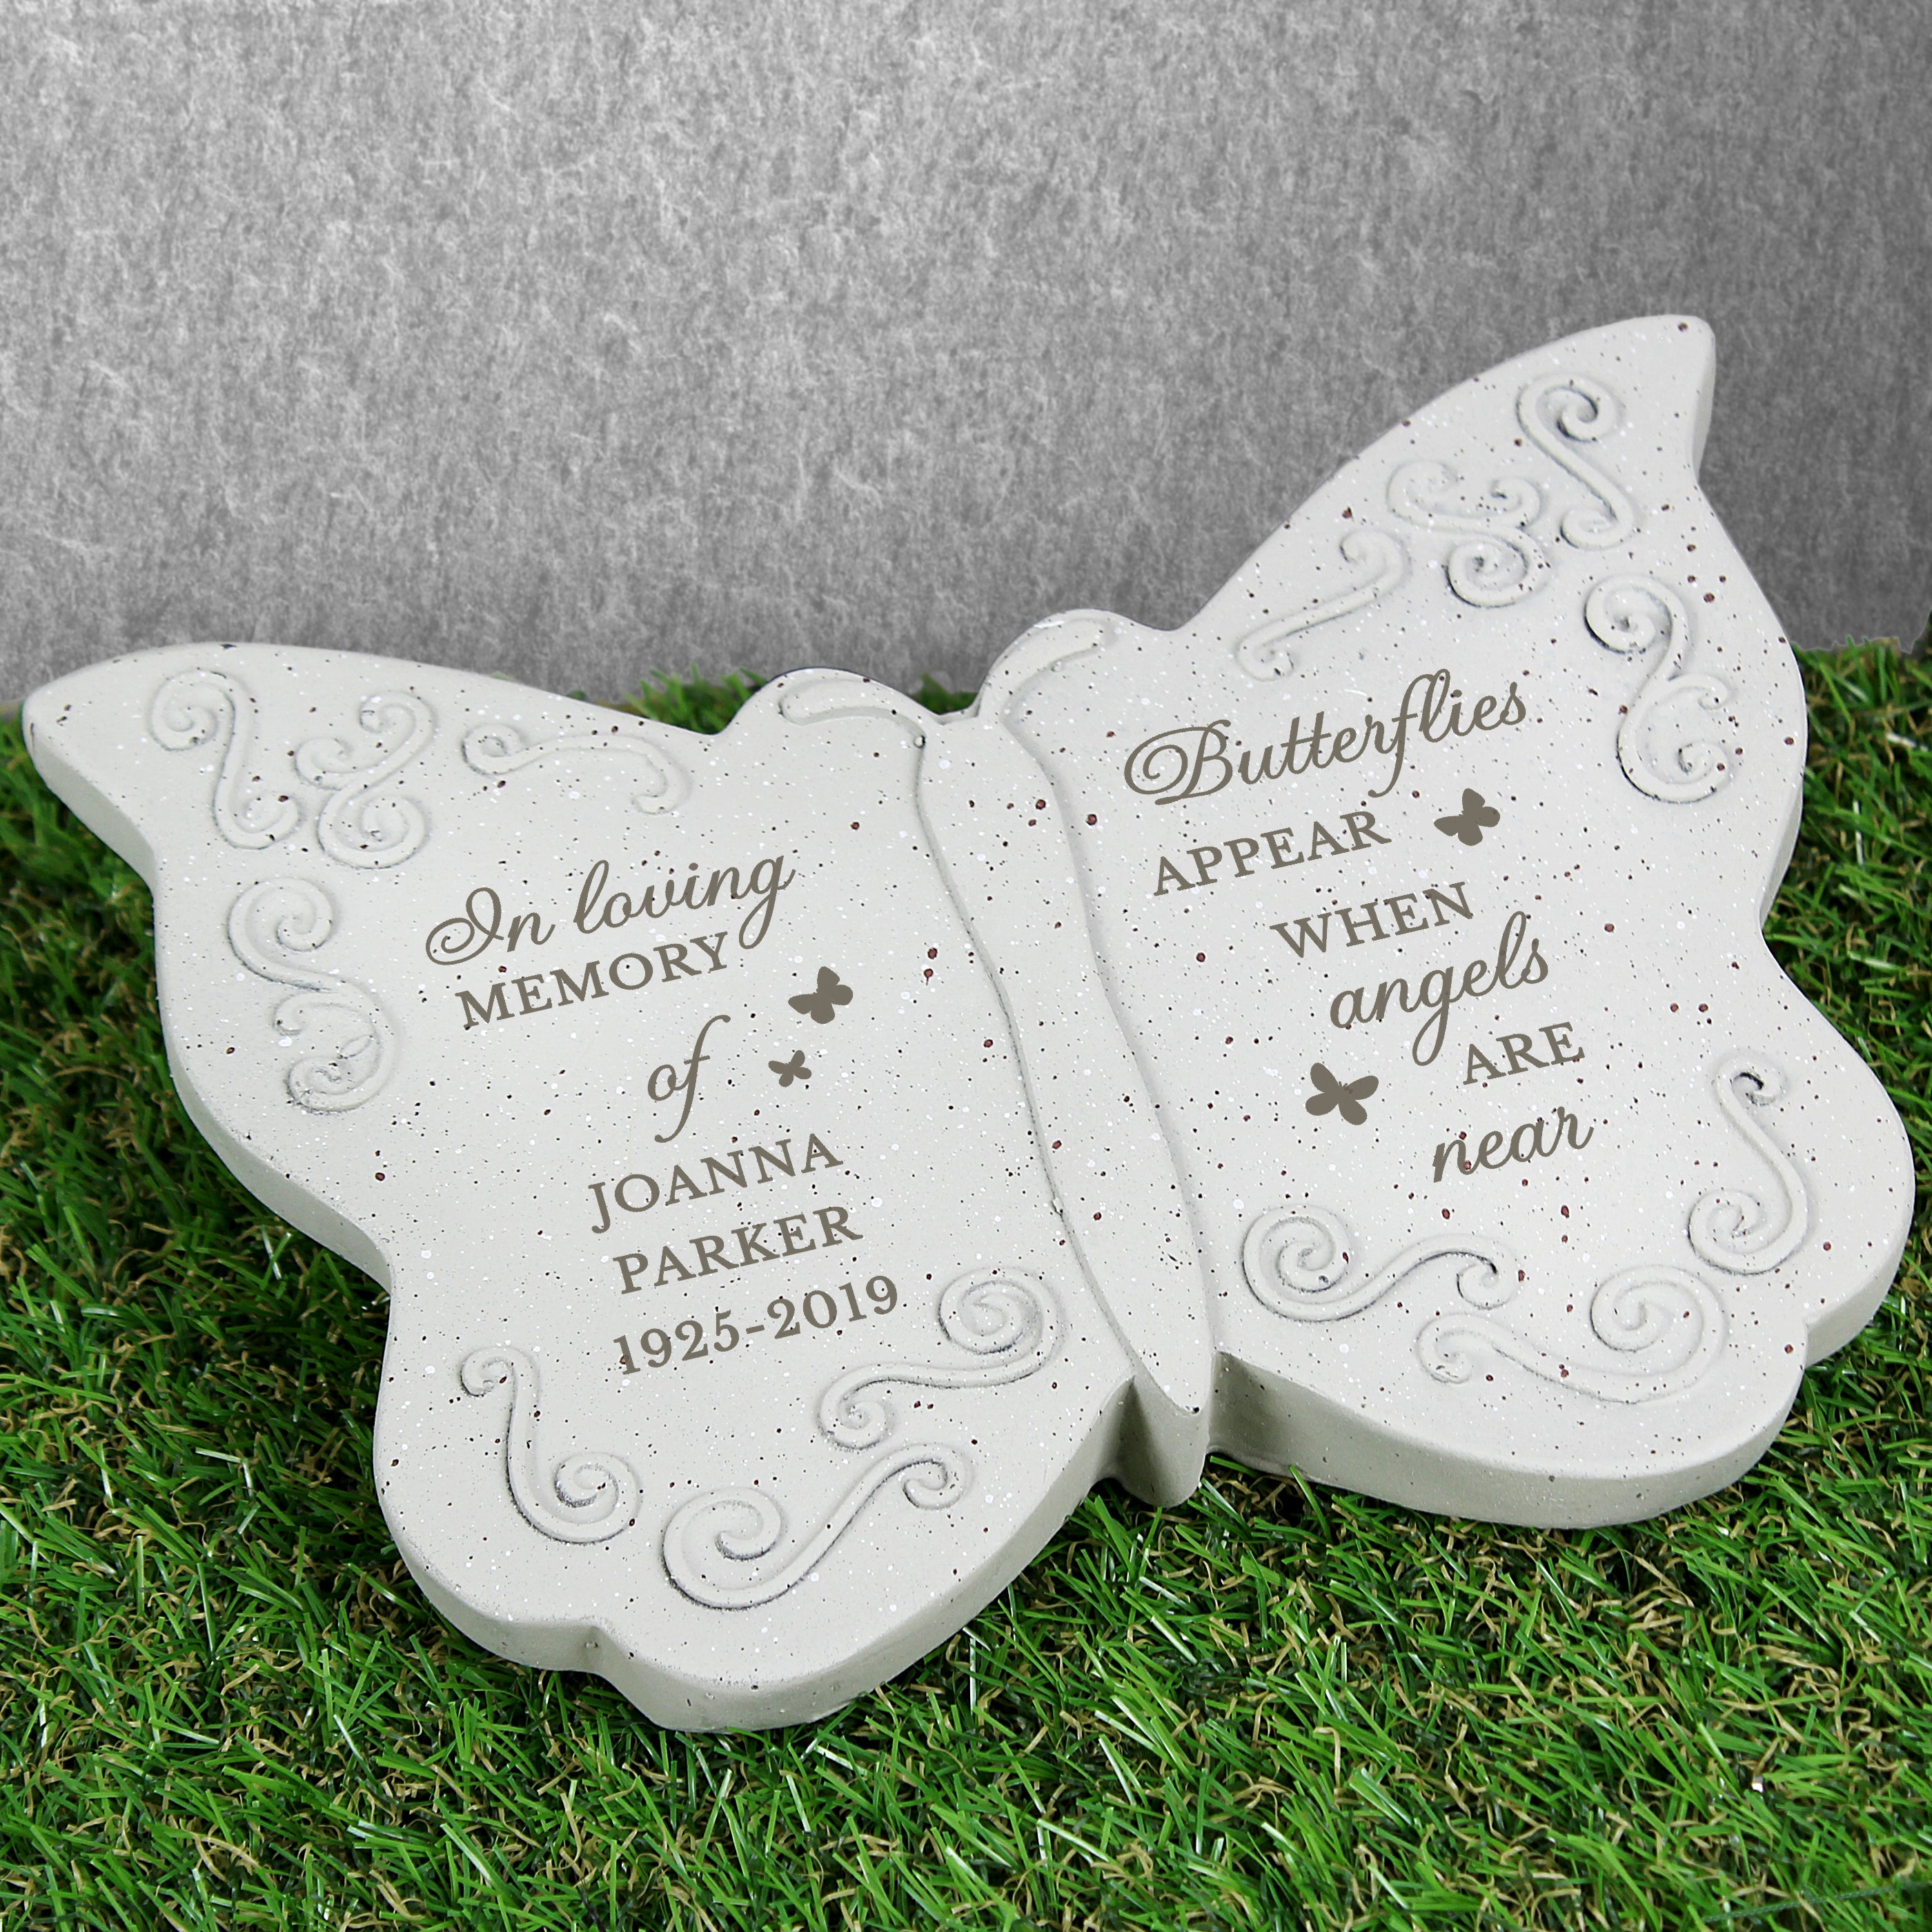 Personalised Butterflies Appear Memorial Butterfly, Memorial Ceremony Supplies by Gifts24-7